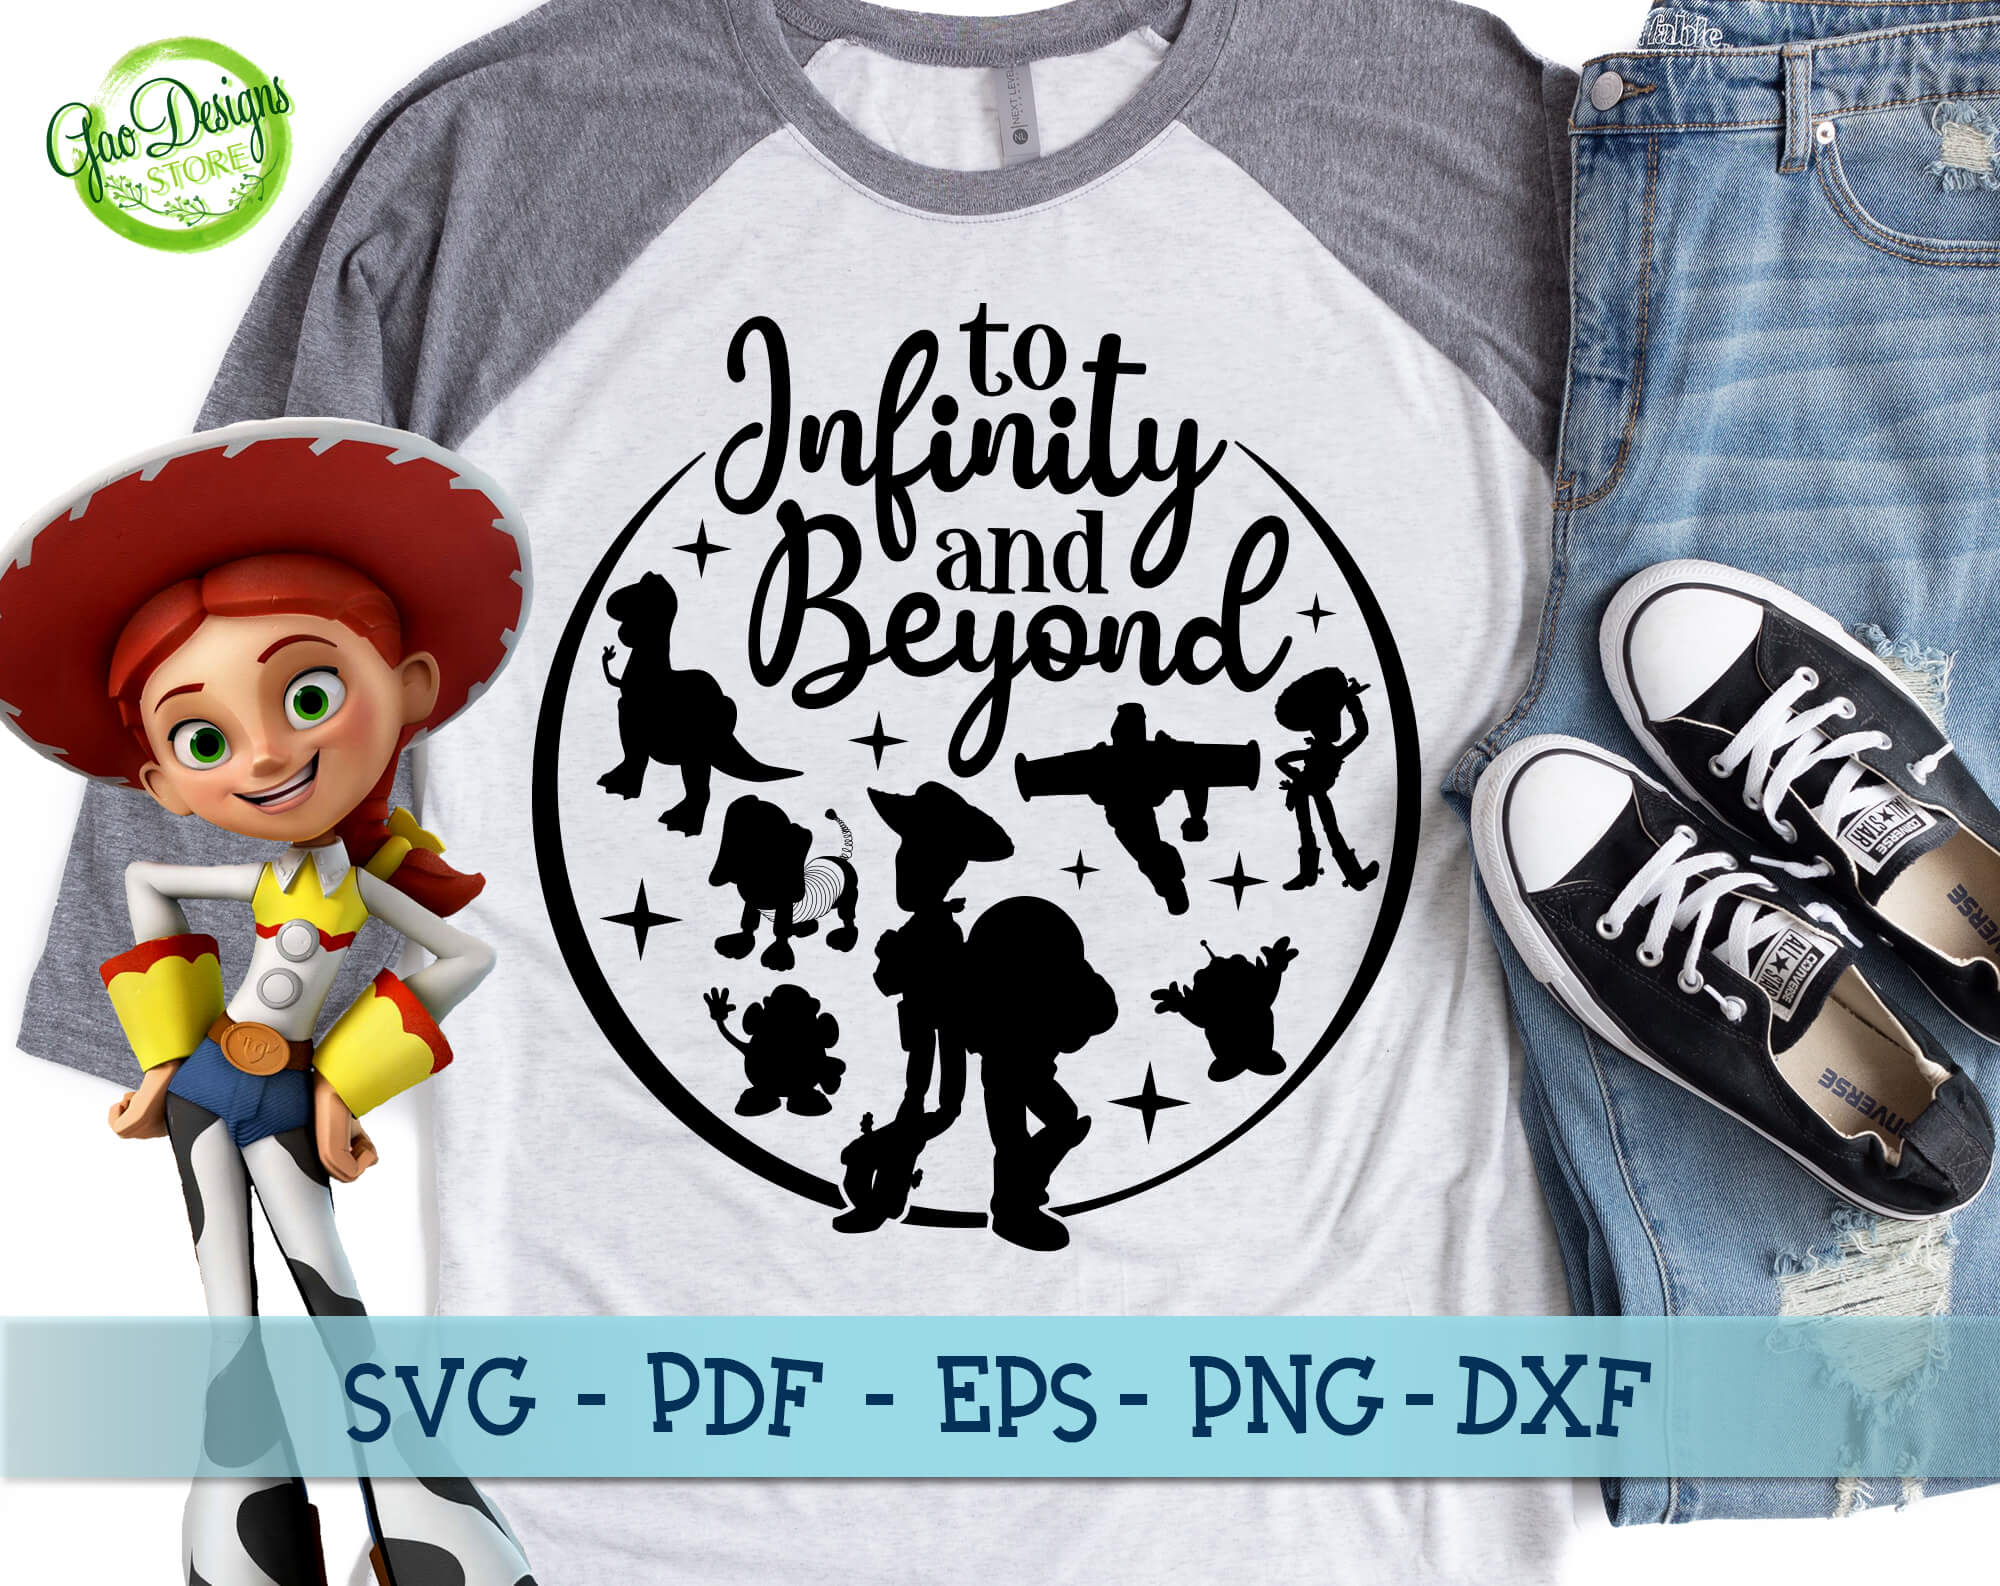 Get I Love You To Infinity And Beyond Svg Design